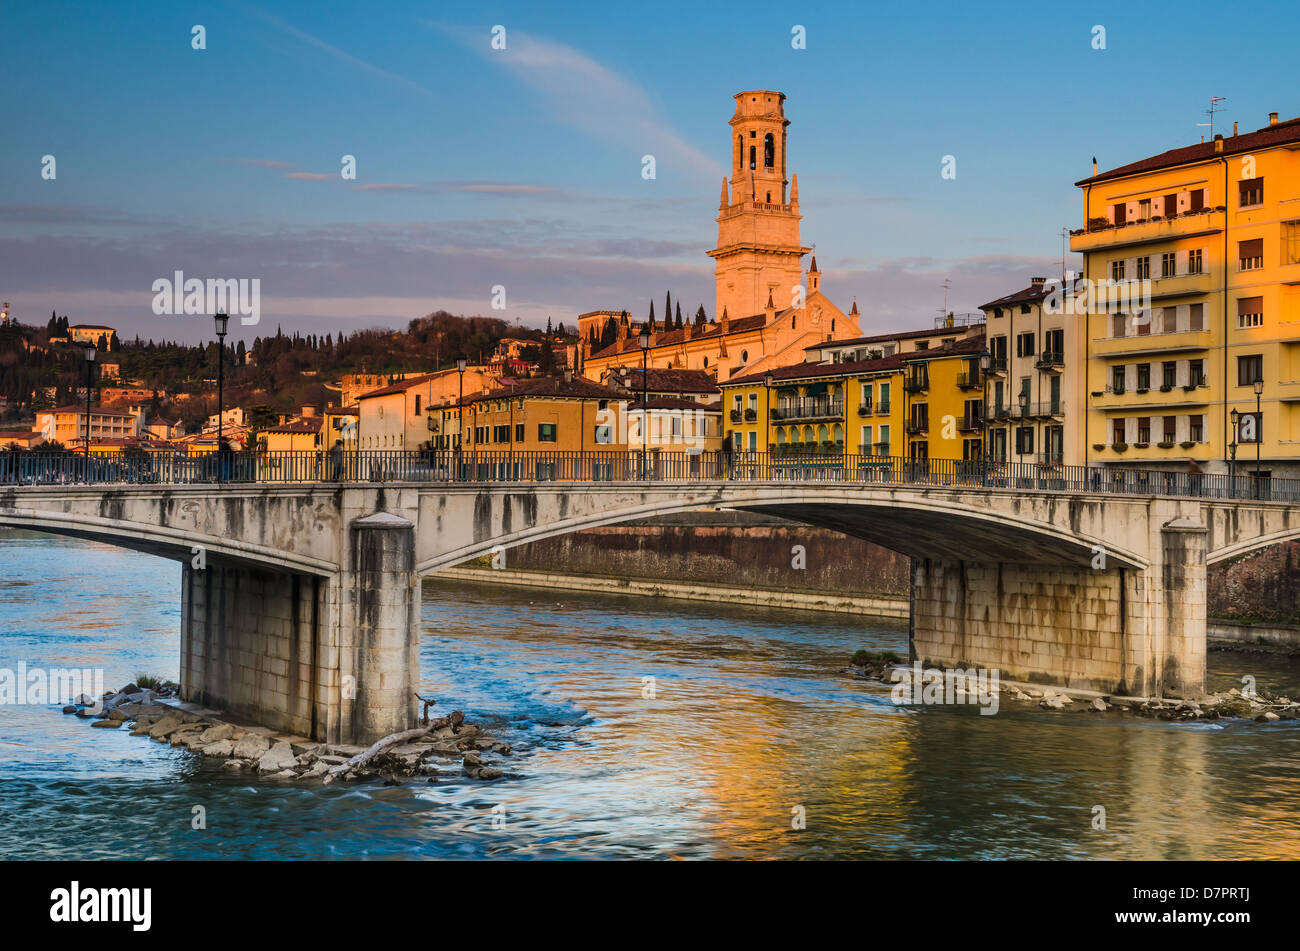 Bridge over Adige river in Verona with Duomo tower in background, Italy historic city. - Stock Image